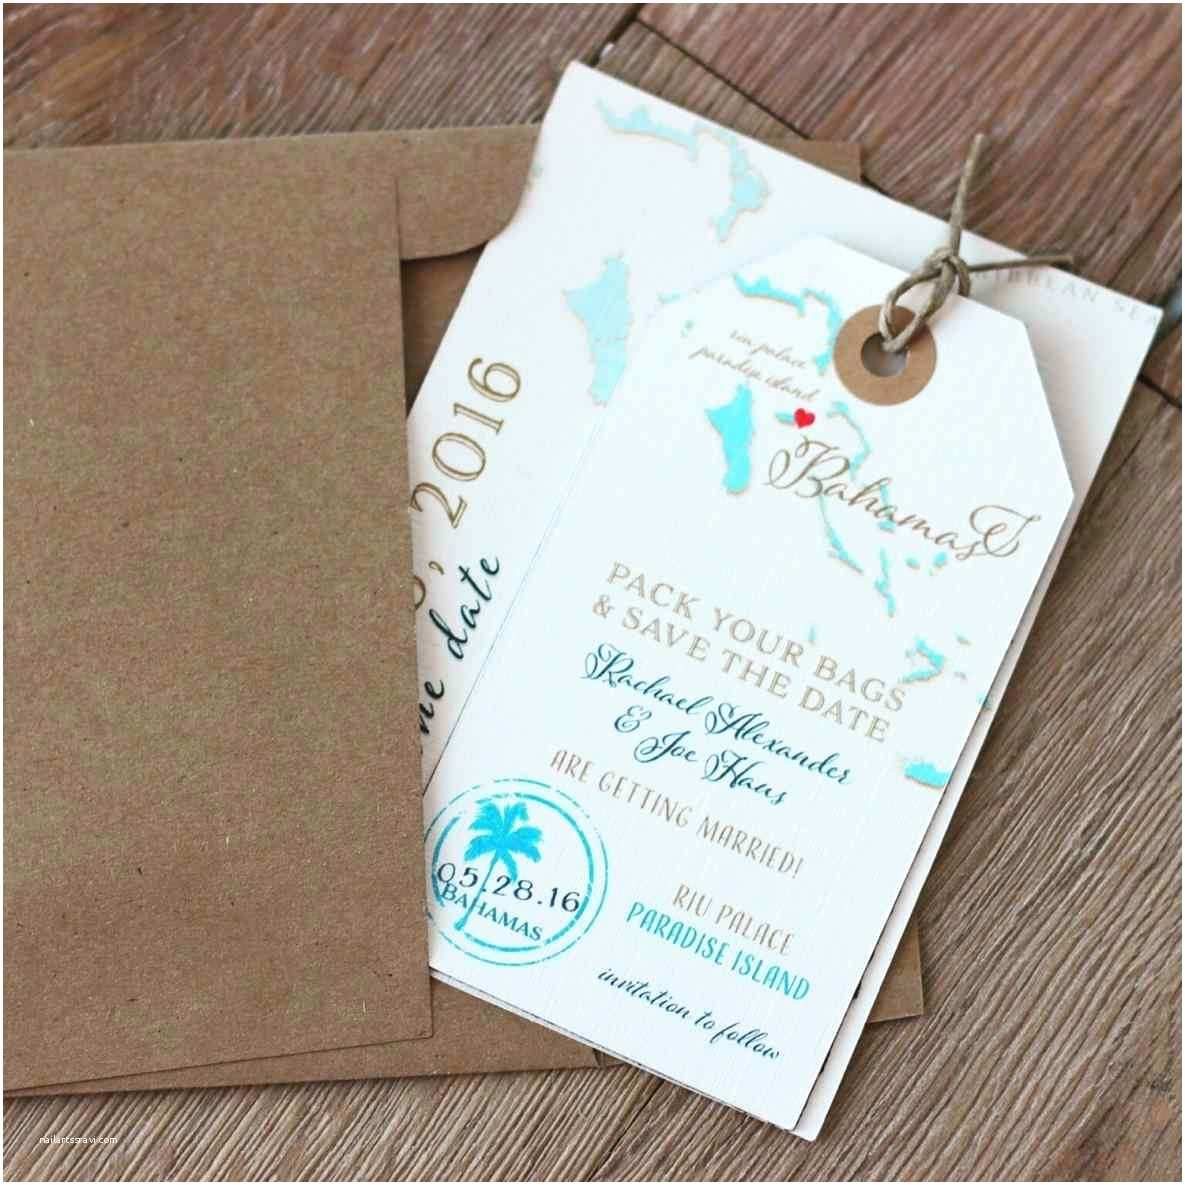 Luggage Tag Wedding Invitations Destination Wedding Invitations Etsy